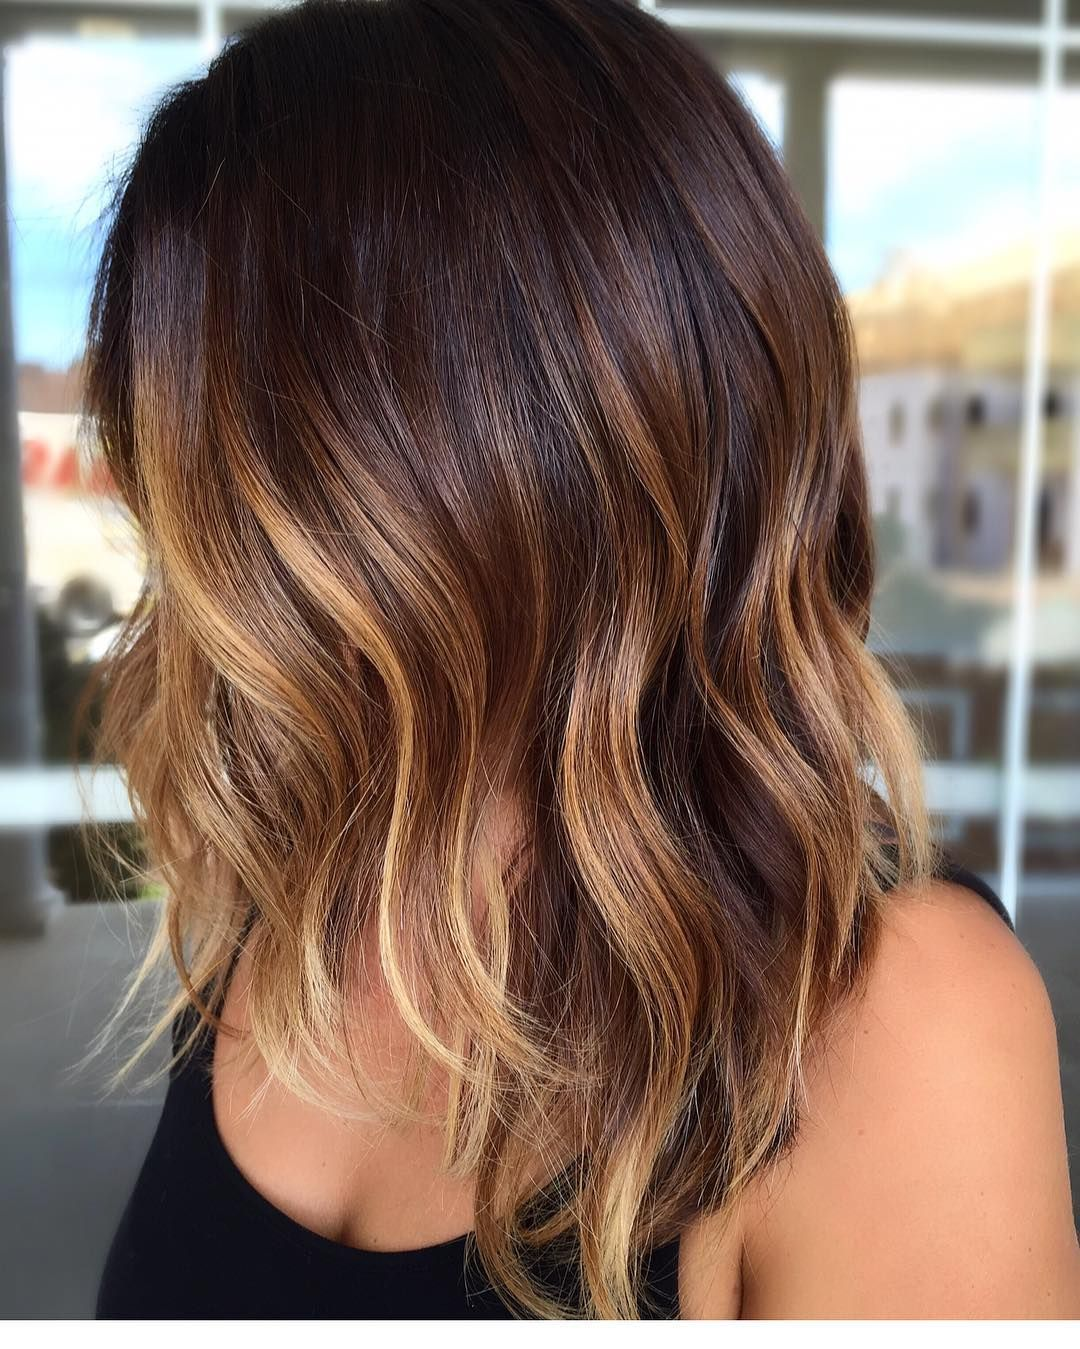 Pin By Newaylook On Newaylook Pinterest Hair Balayage And Hair